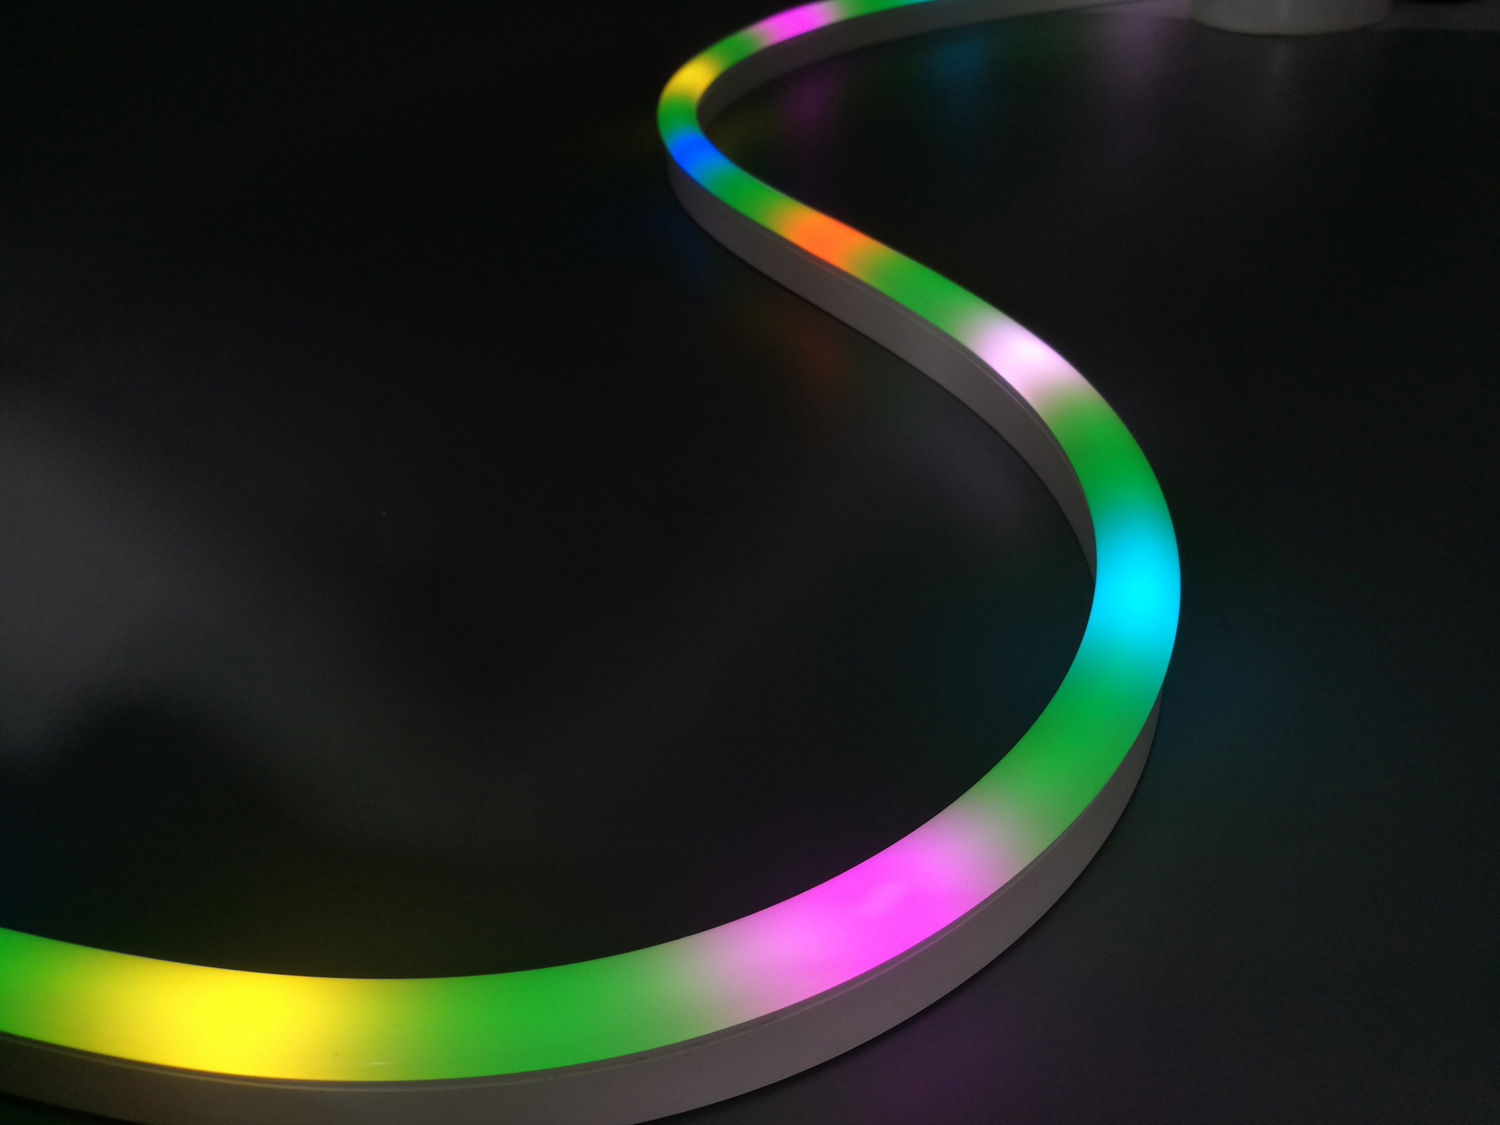 High Performance Dotless Flexible Neon LED Strip Lights LG10S1225_3